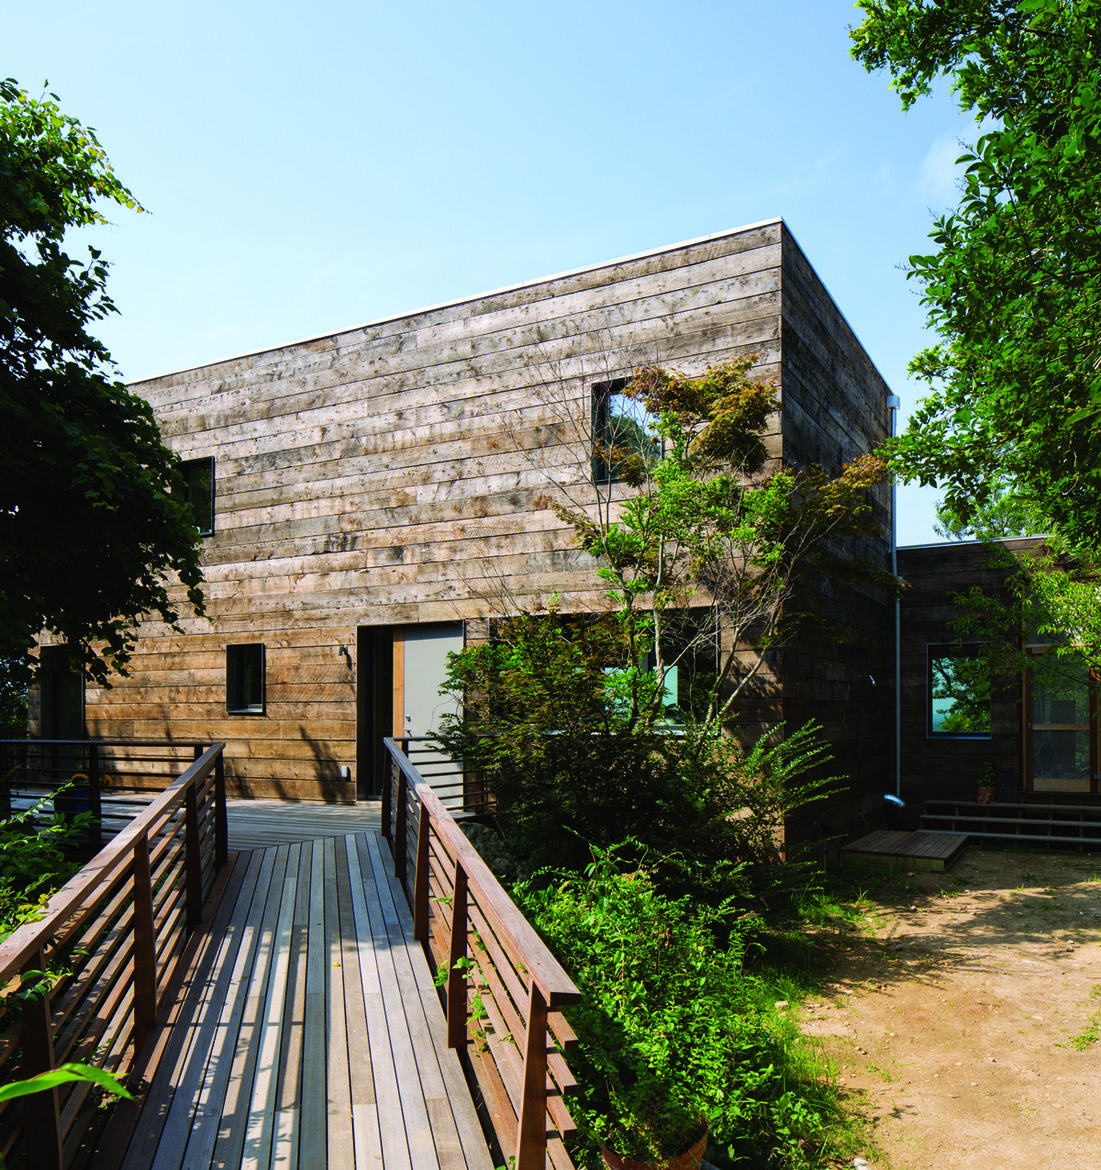 Passive house renovation project on Long Island in New York designed by Ryall Porter Sheridan Architects